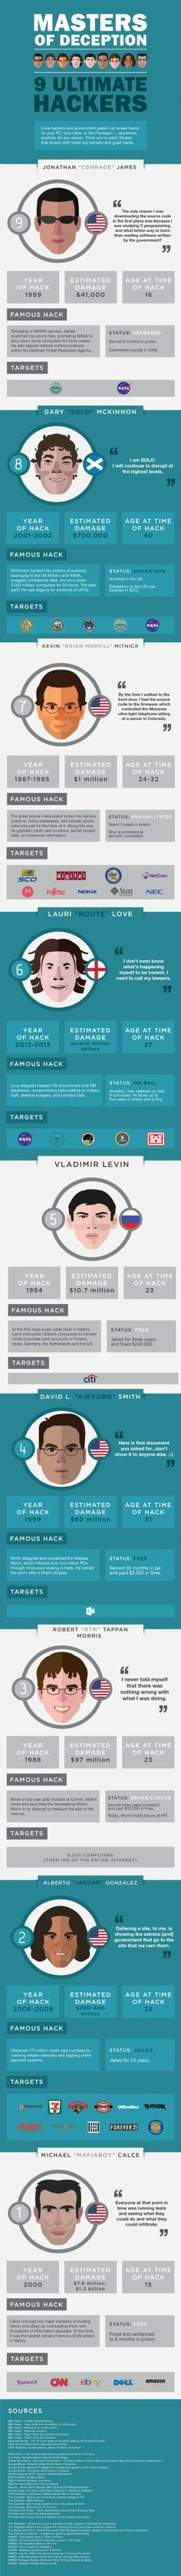 ultimate hackers   The 9 Master Hackers Of The World (That We Know Of)